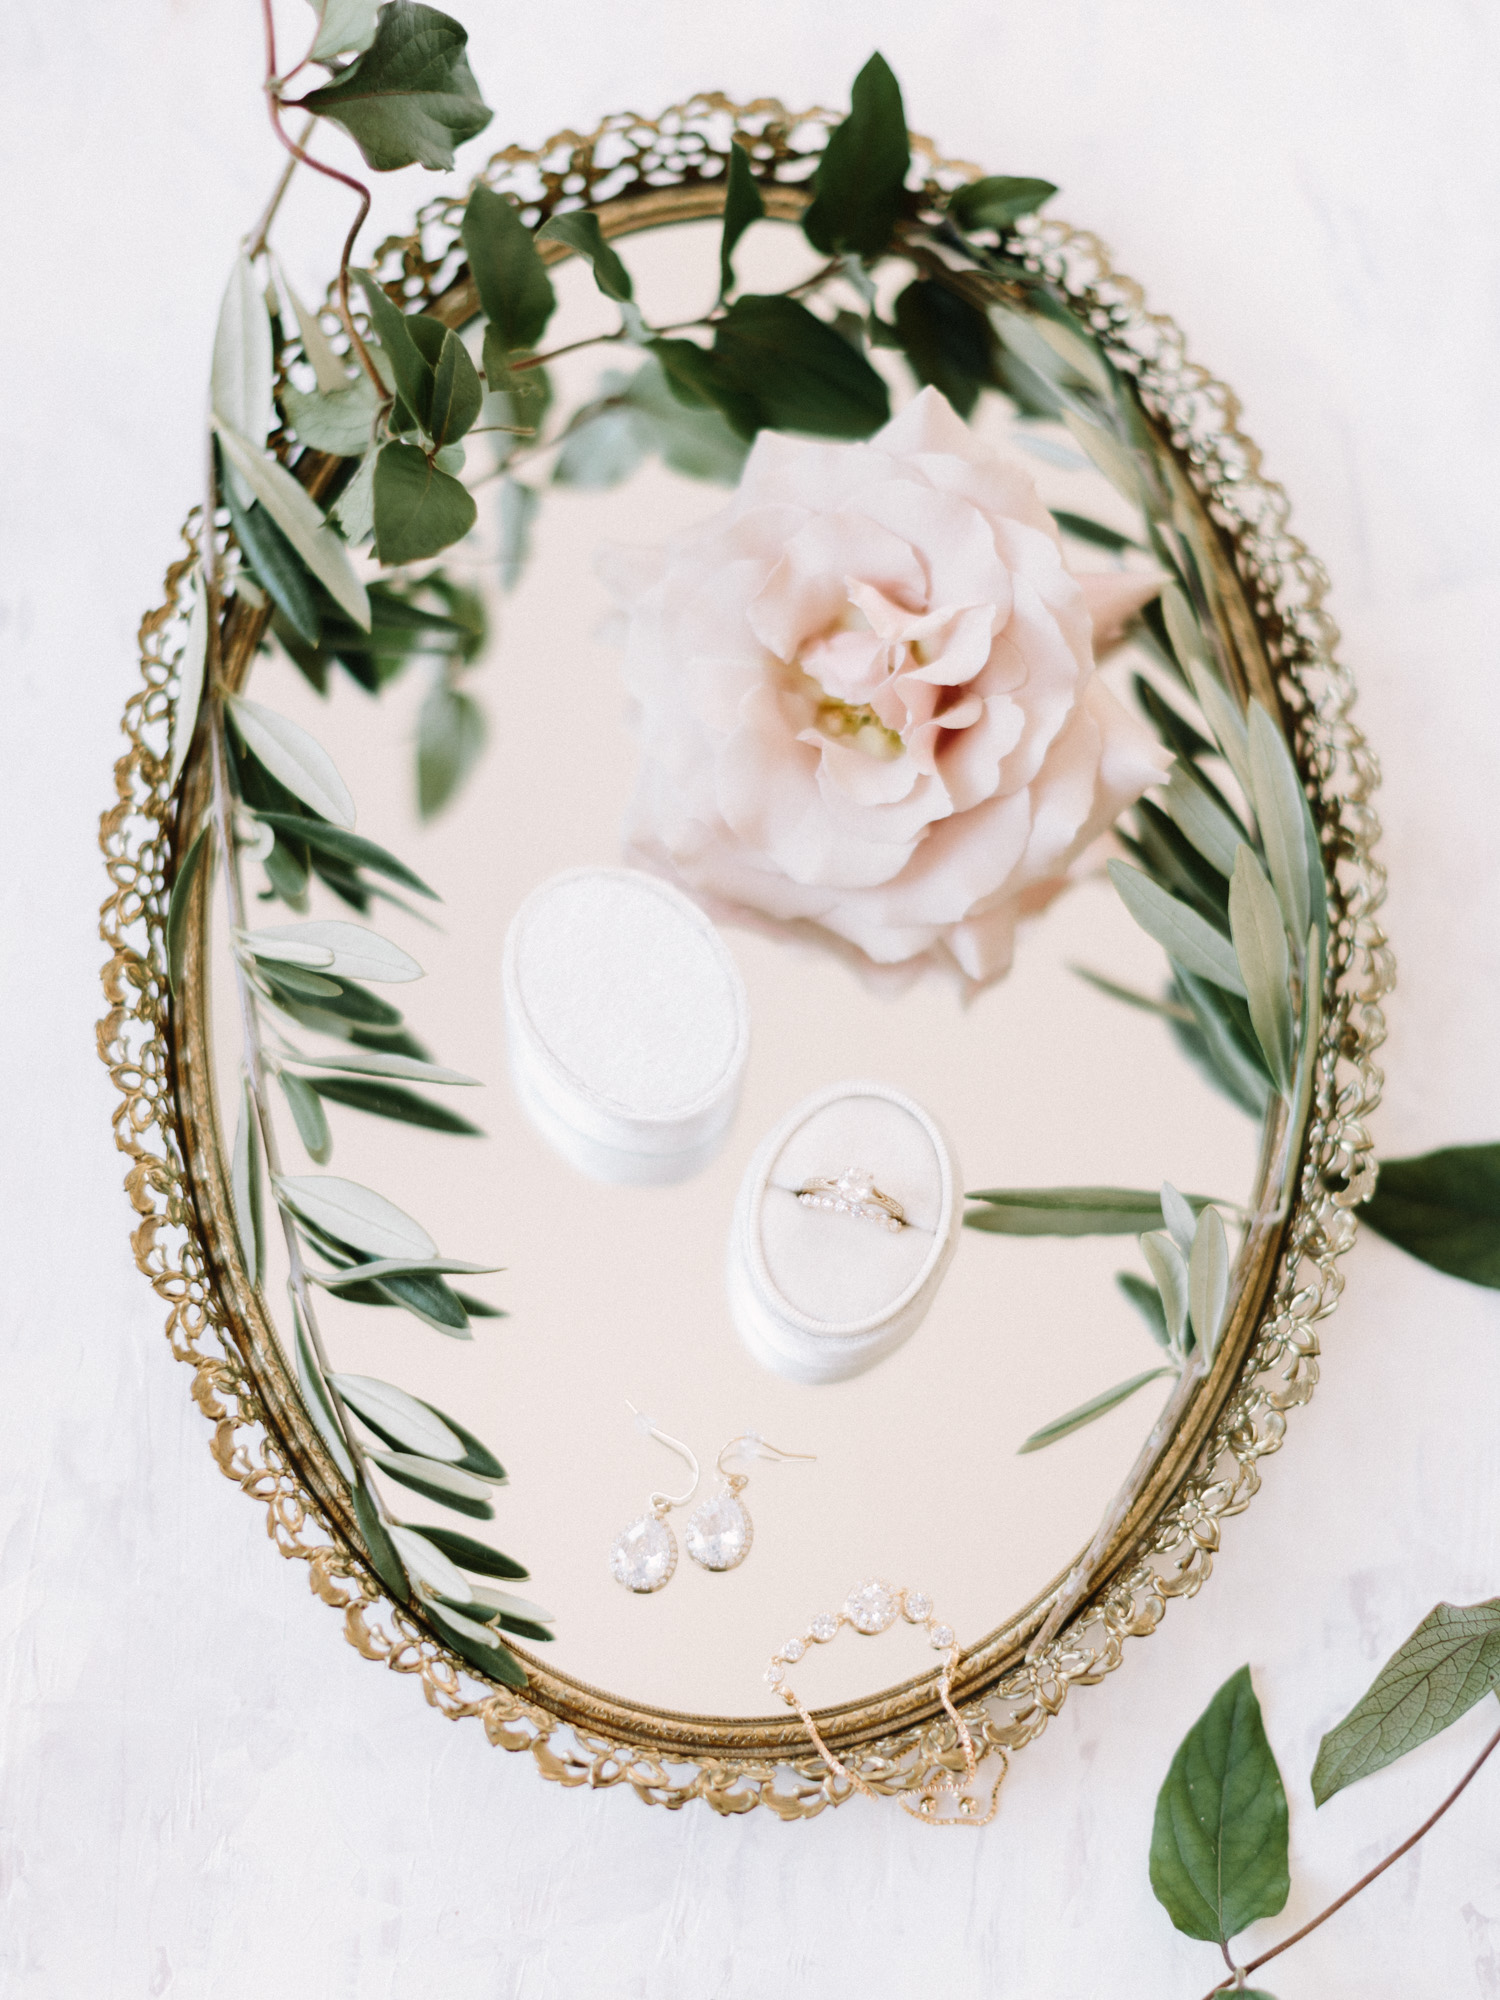 gold bridal jewelry rests on an antique mirror with greenery and flowers